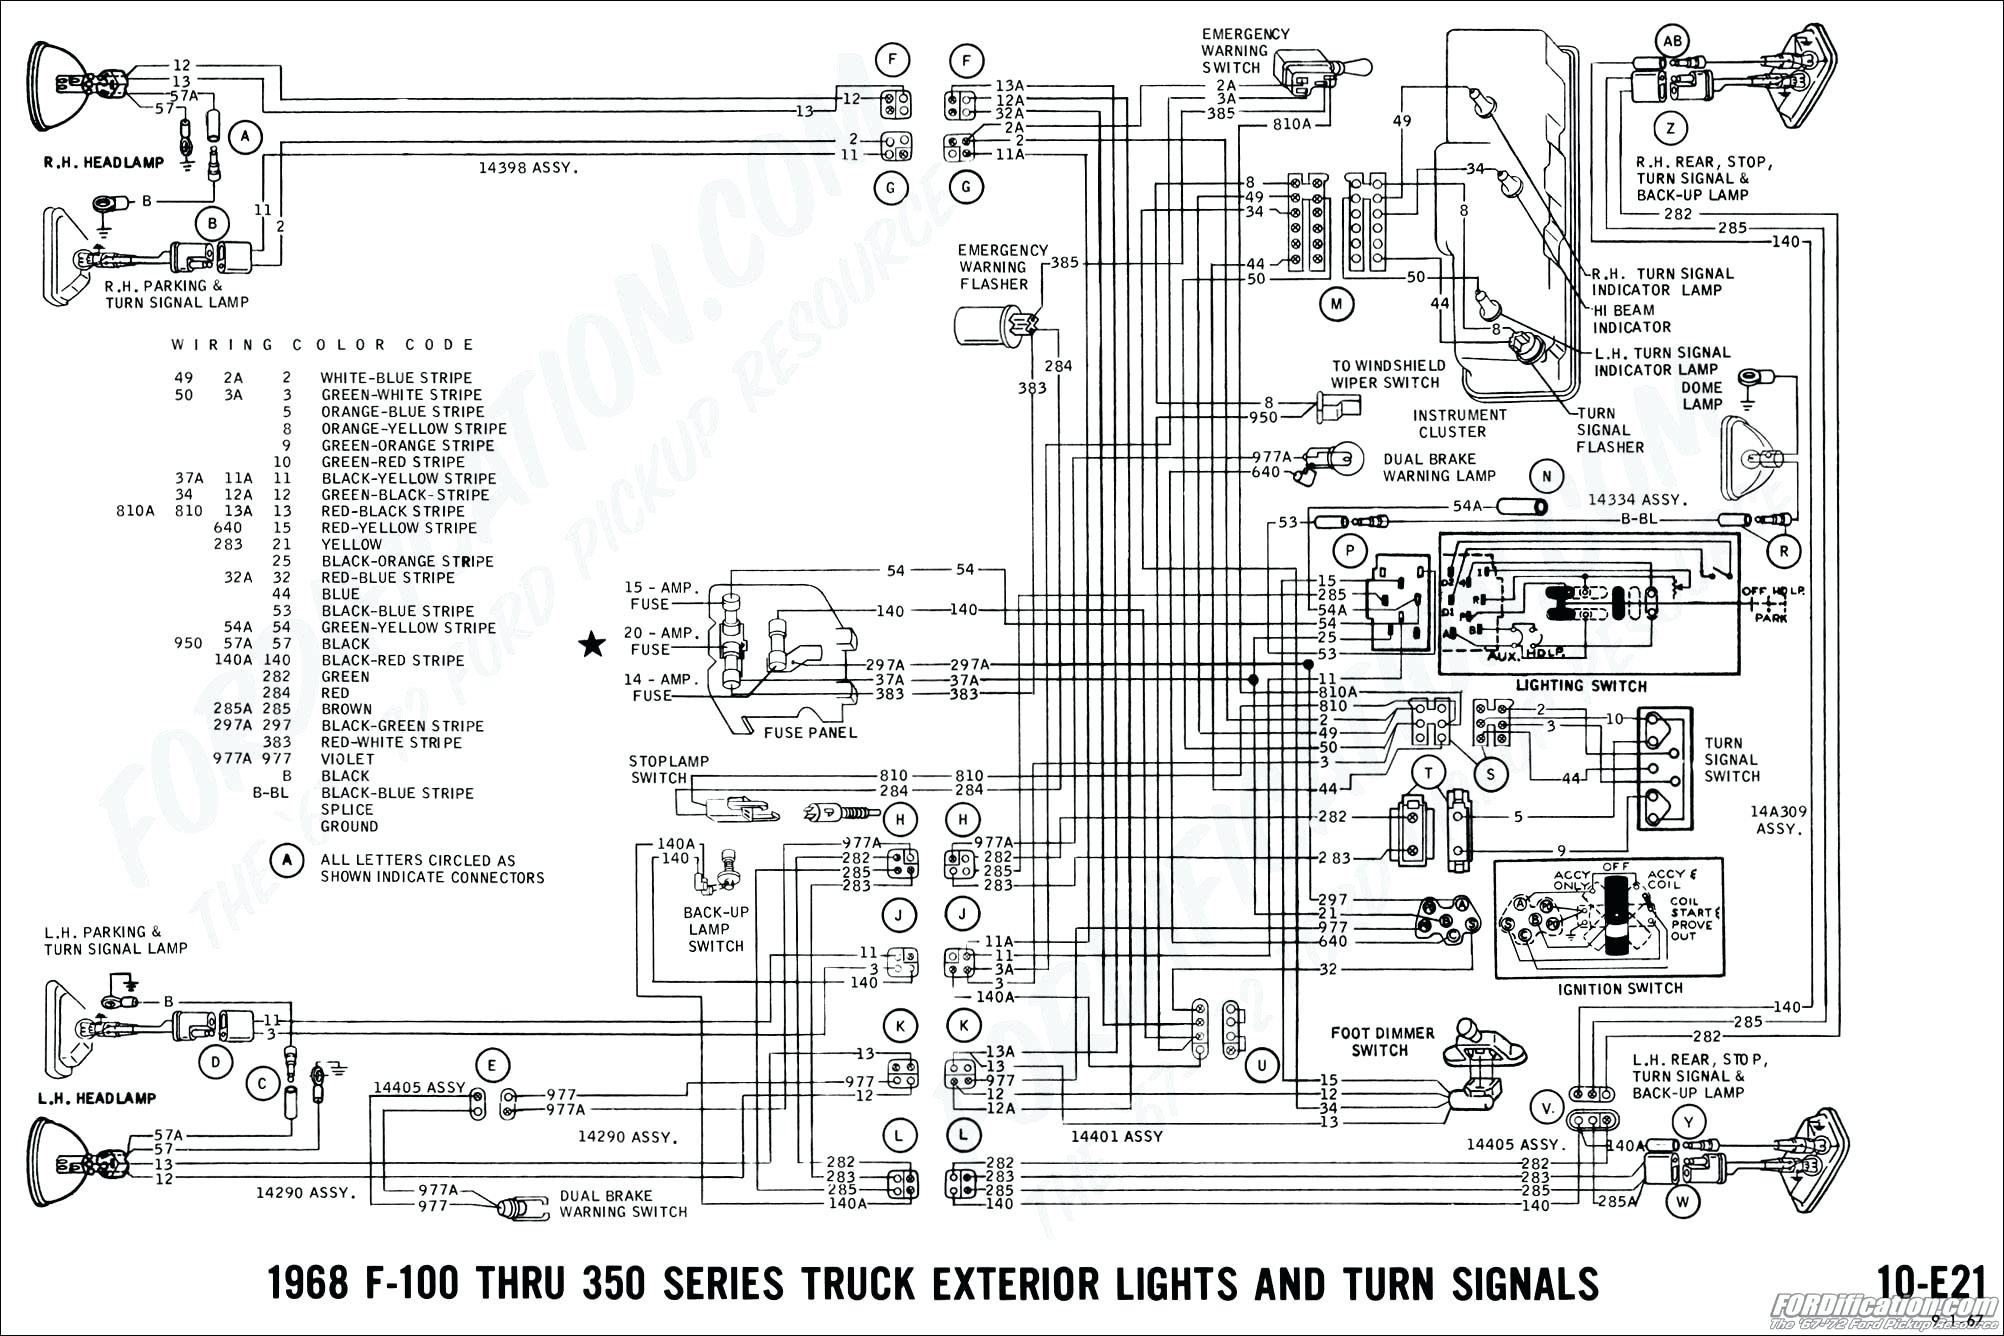 1951 Ford Wiring Schematic Library 1973 Chevy Truck Electrical Schematics Gm Turn Signal Switch Diagram Diagrams Rh Cytrus Co Stat 800